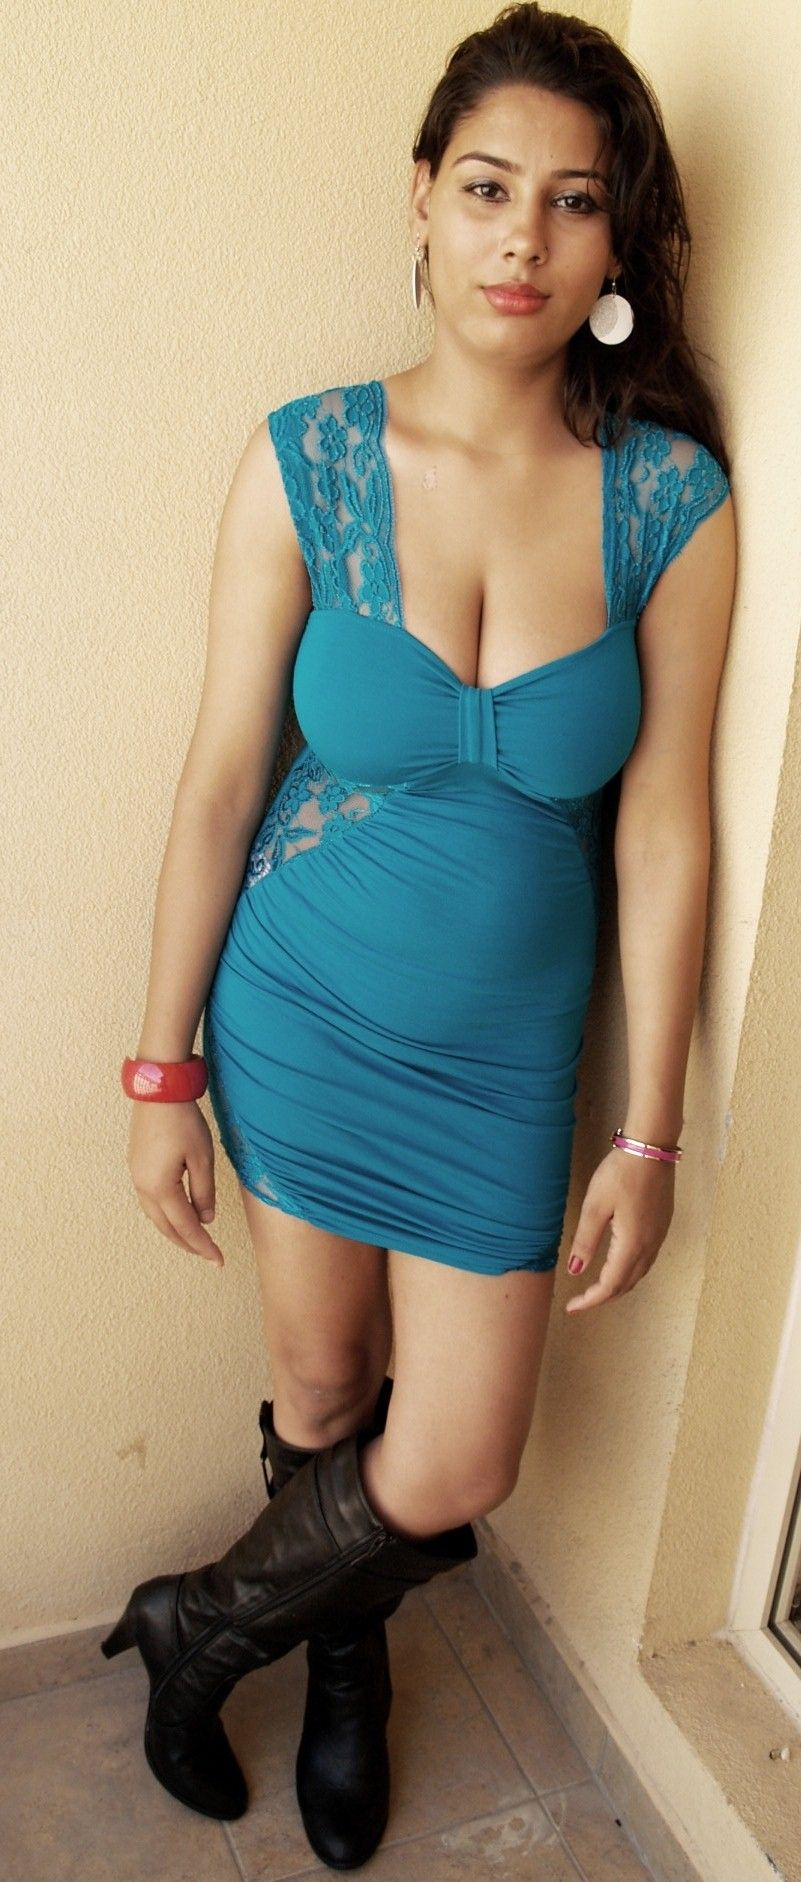 Indian escort in adelaide